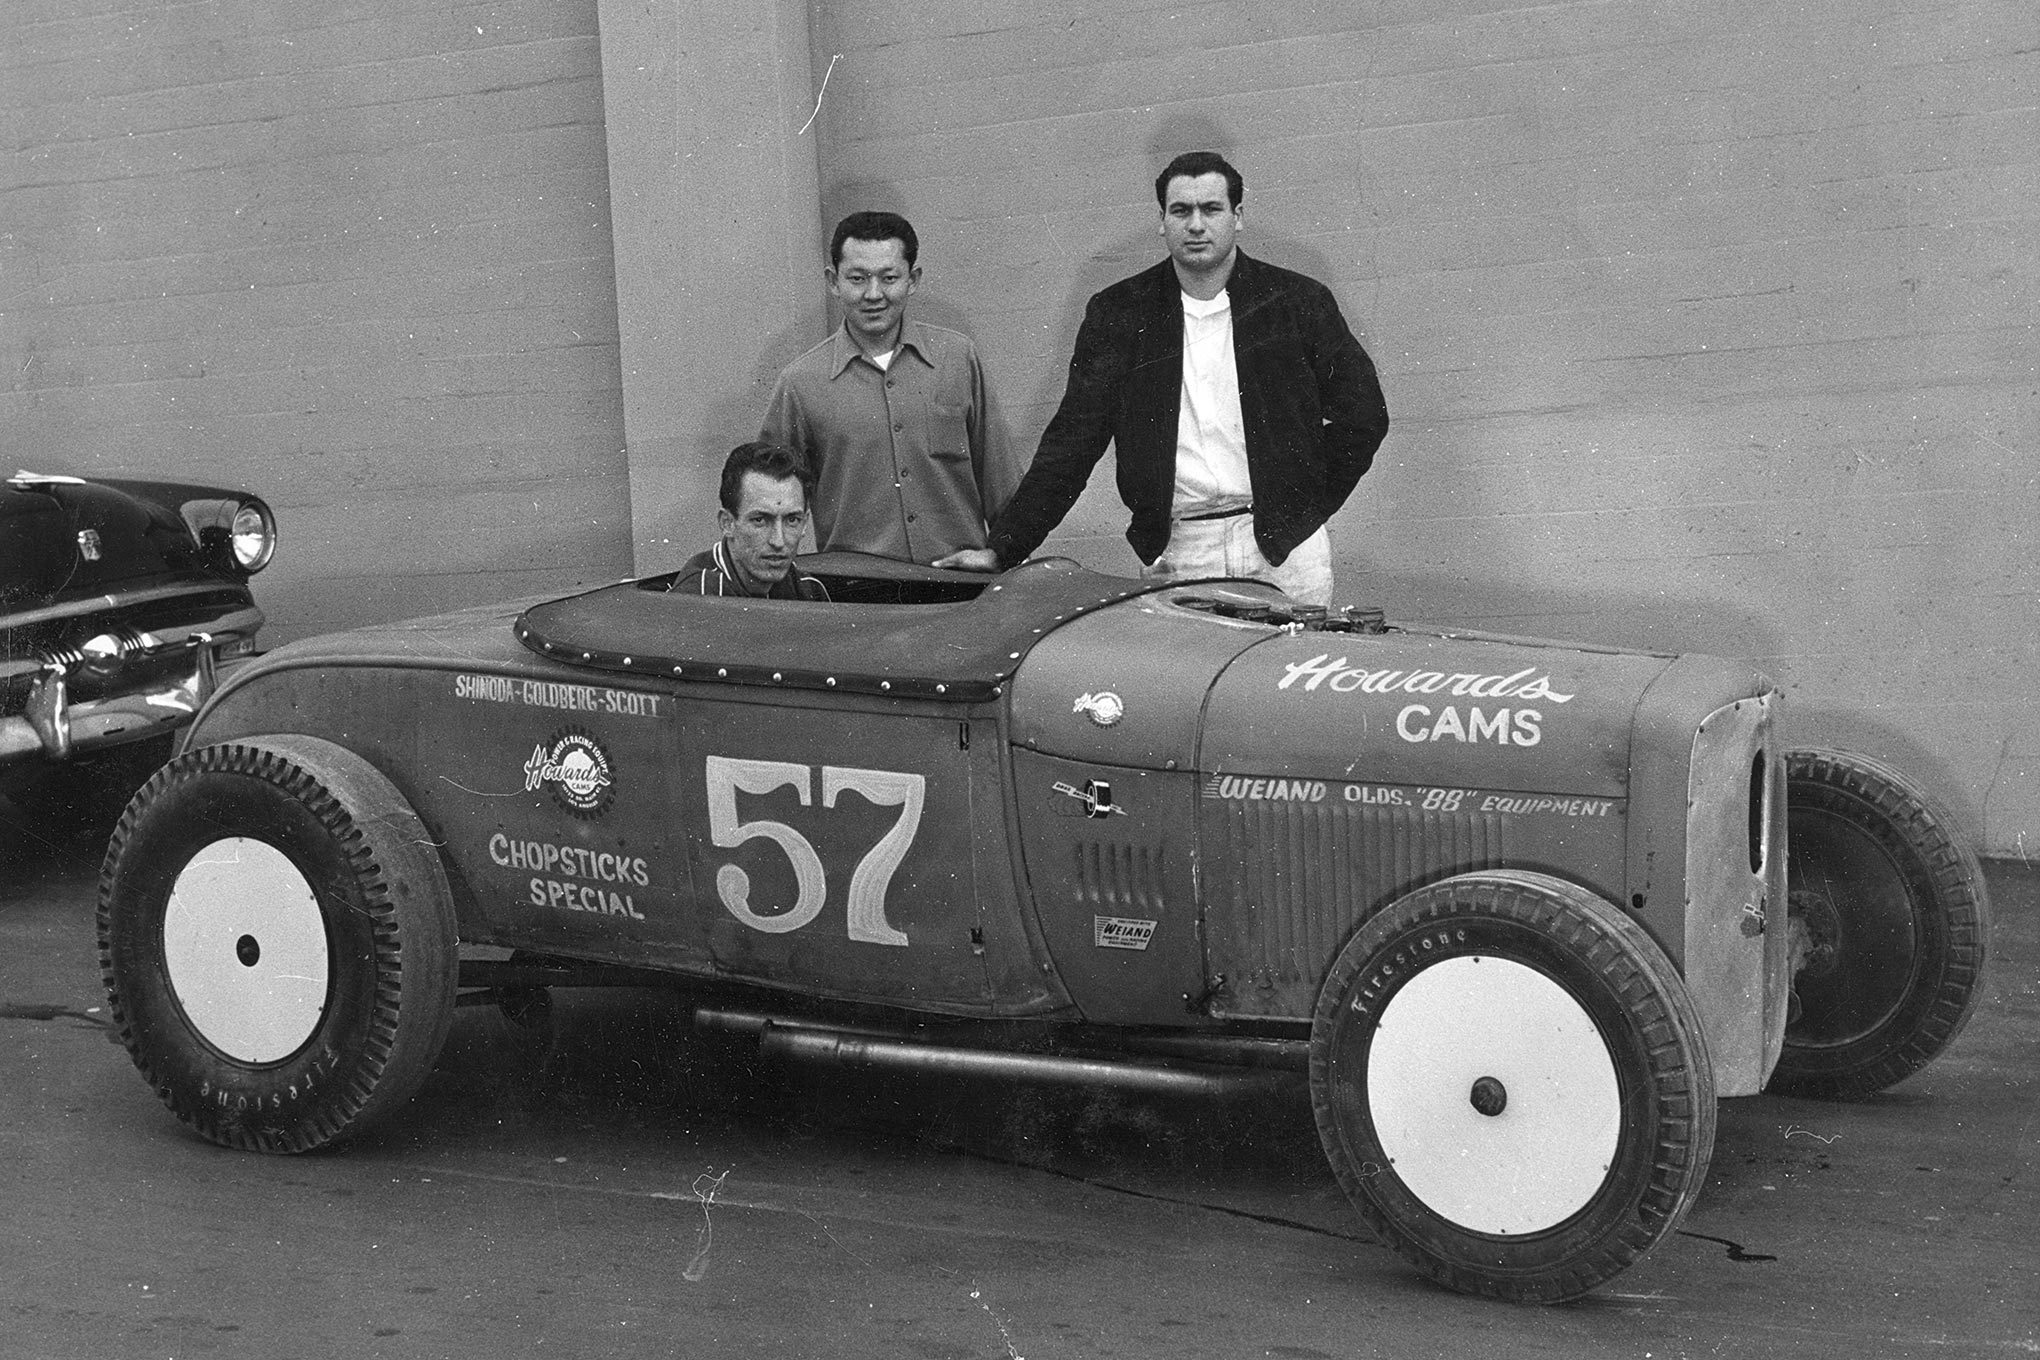 The last Chopsticks Special team had Larry Shinoda (left), Harvey Goldberg (right), and Scotty (seated). The team dissolved when Shinoda went to work for Ford in 1955. Chopsticks and Bustle Bomb ran Olds power, presumably the same engine (Goldberg's).